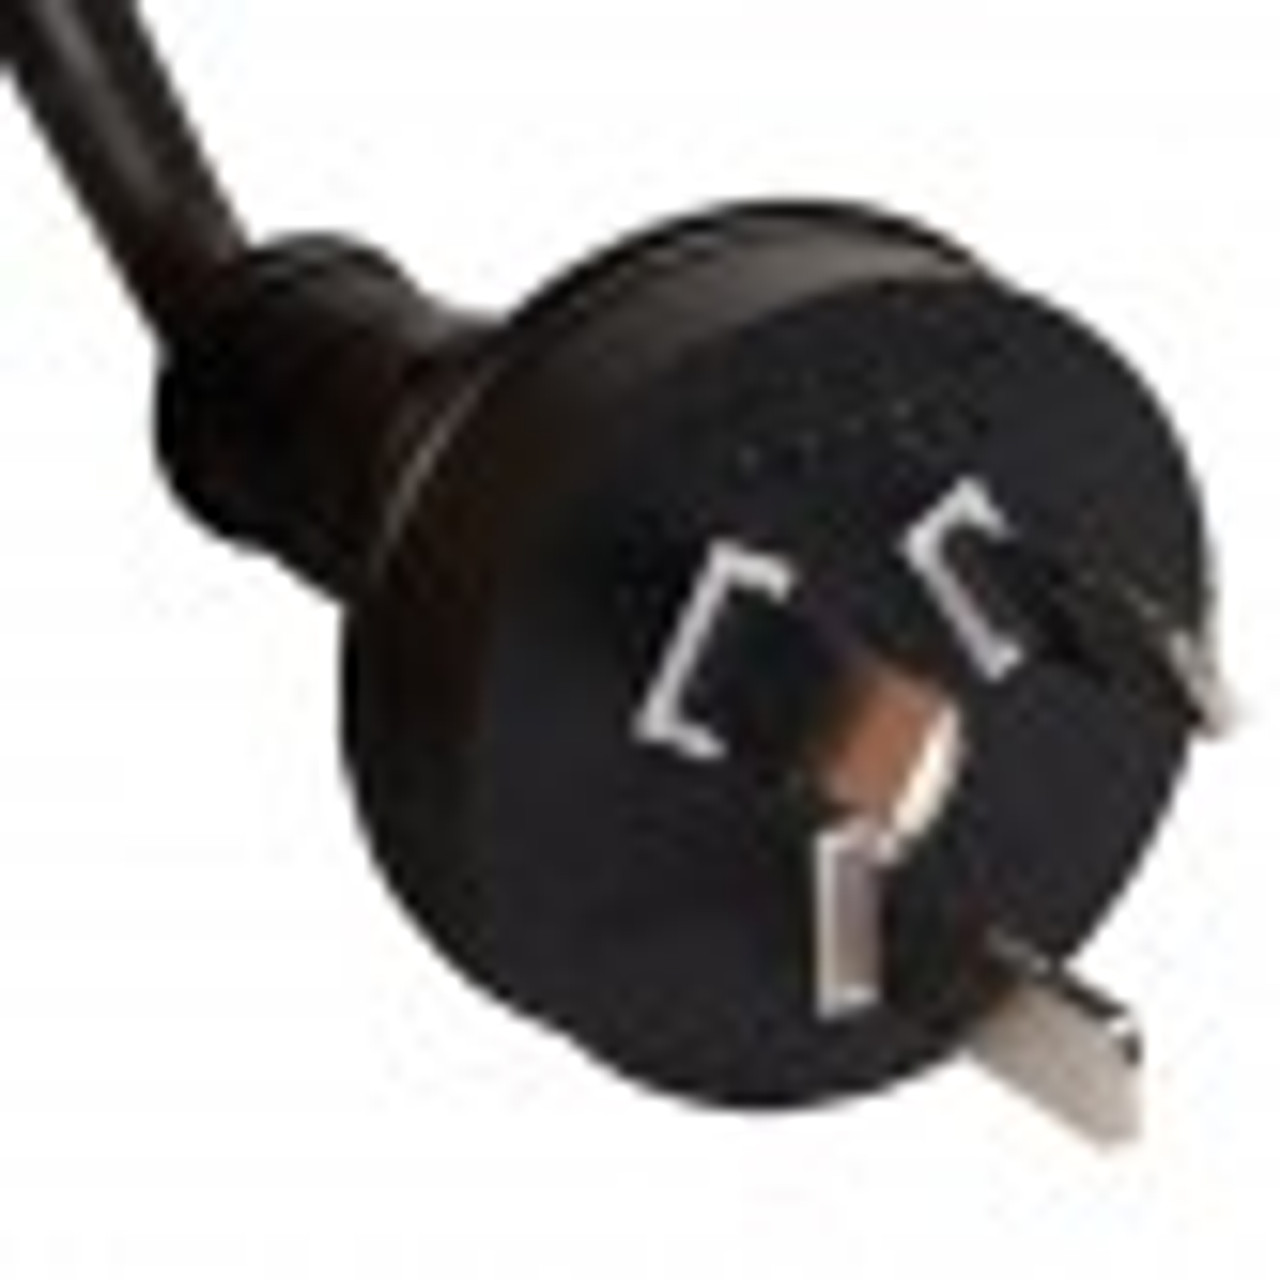 Monitor Power Cable to IEC C13 female socket 1.8m Black